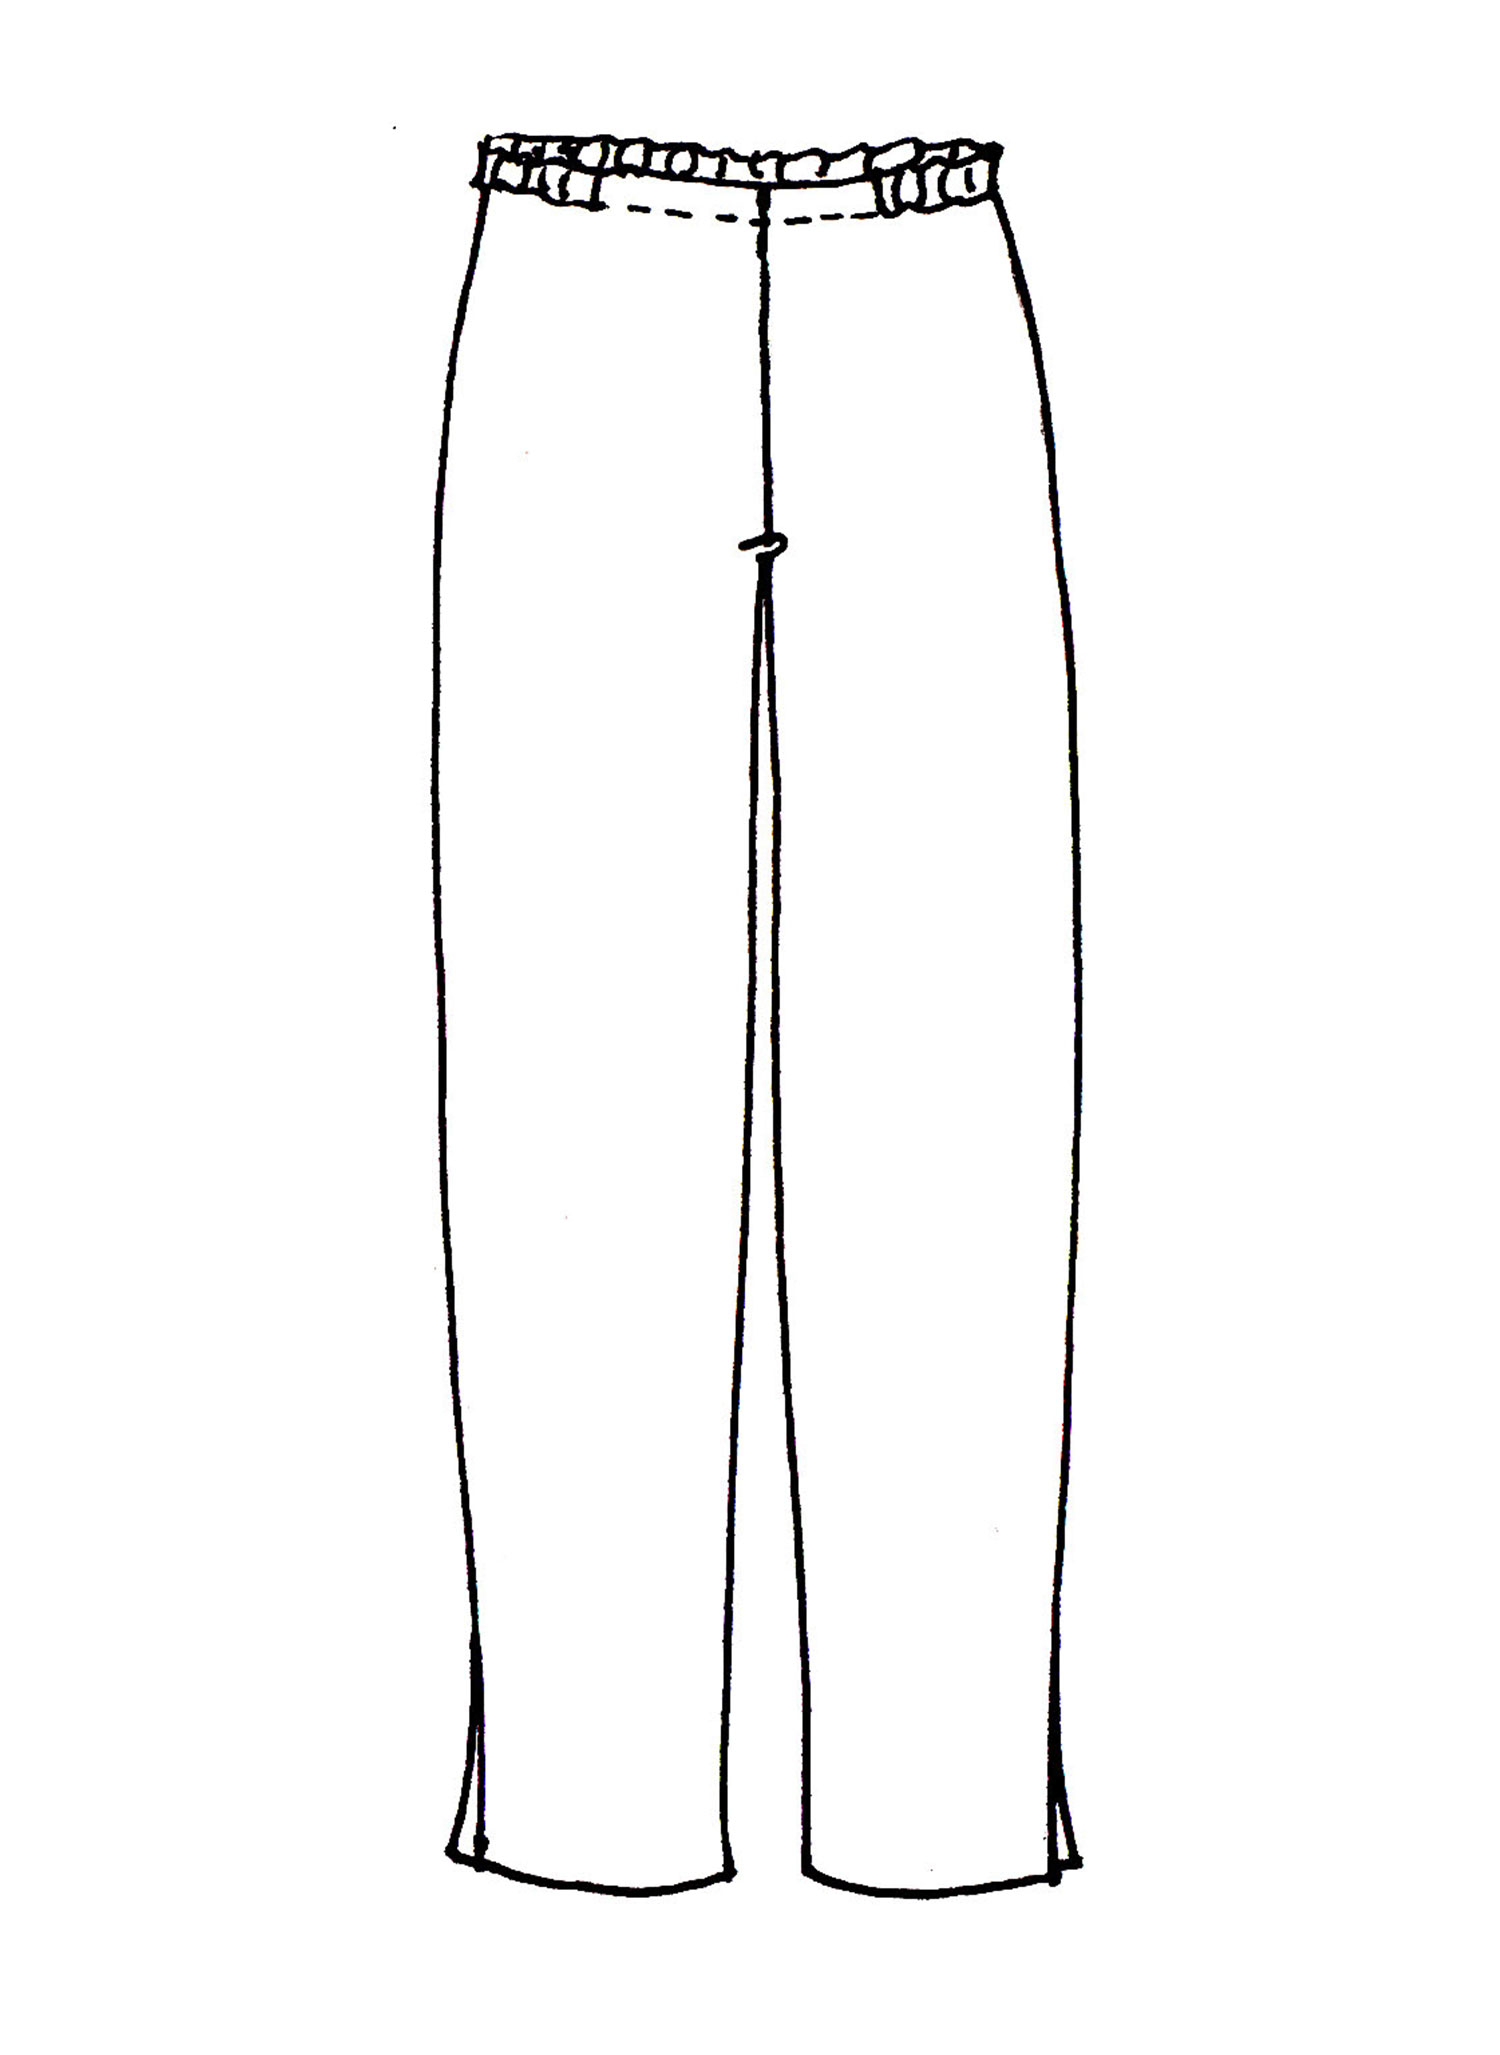 Ankle Pant sketch image